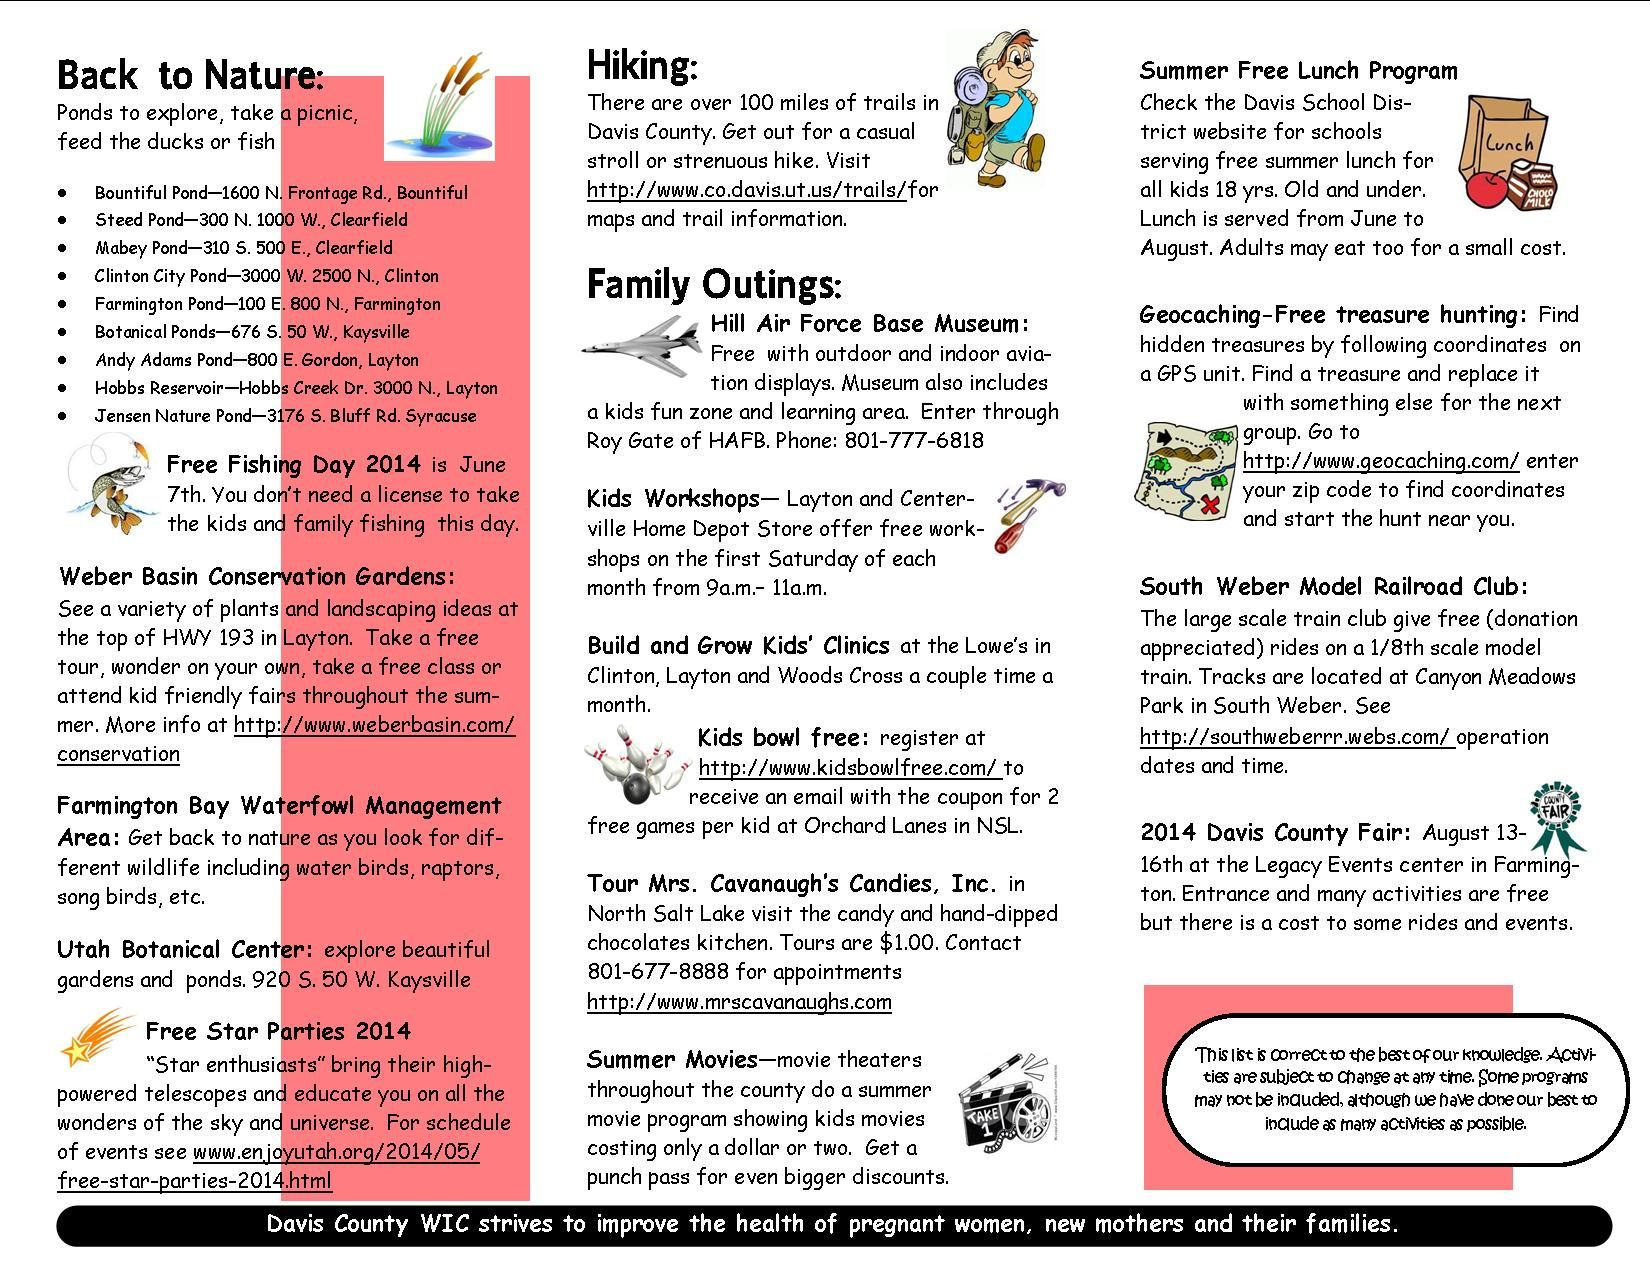 2014 Low Cost Activities In Or Near Davis County Utah Part 2 With Images Free Lunch Program Davis County Family Parties